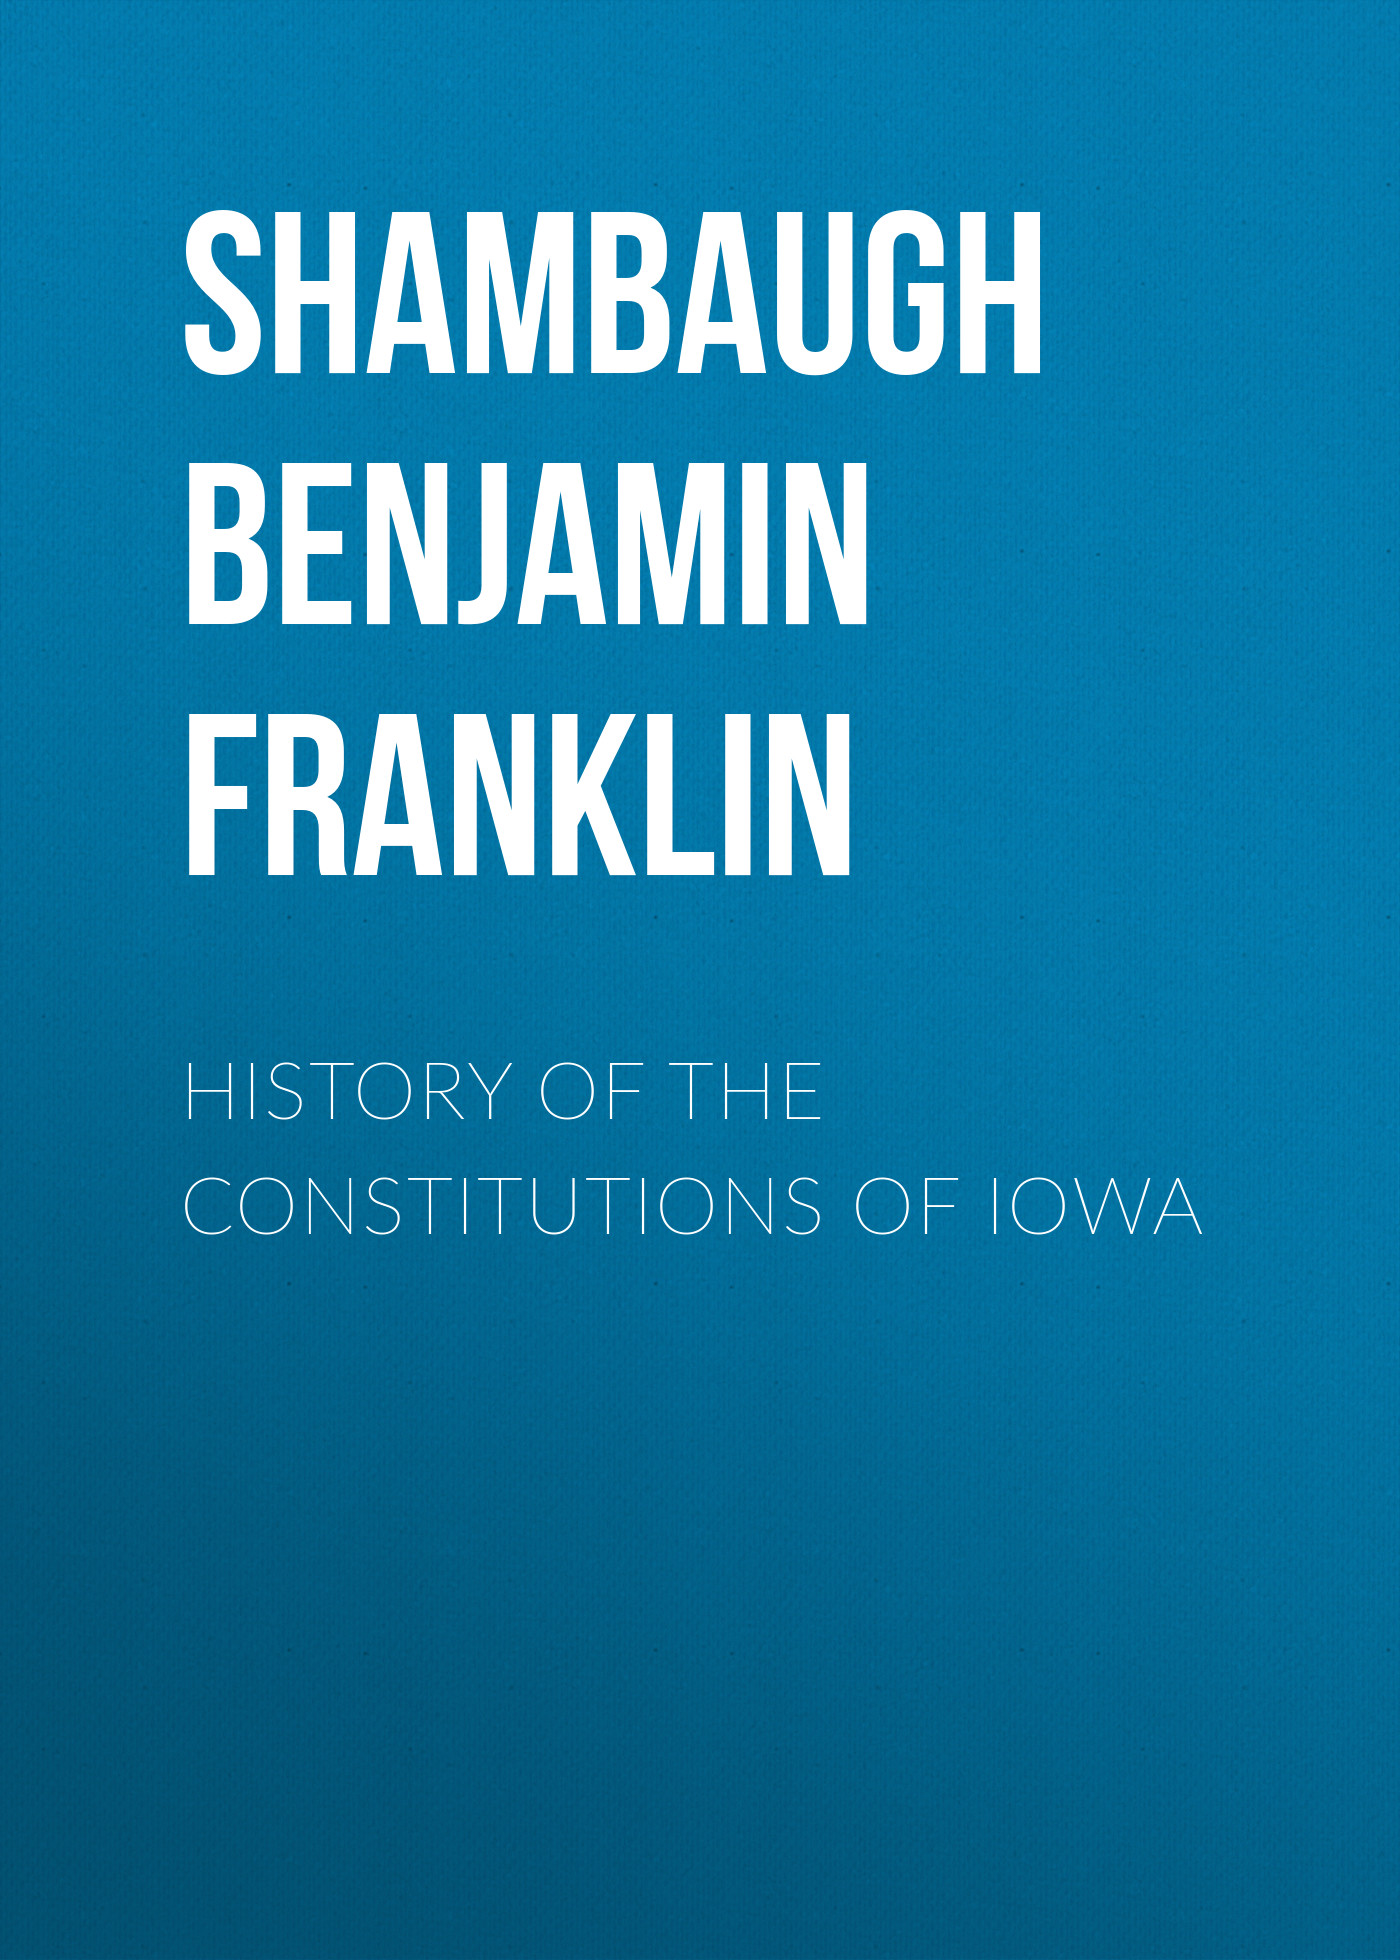 Shambaugh Benjamin Franklin History of the Constitutions of Iowa